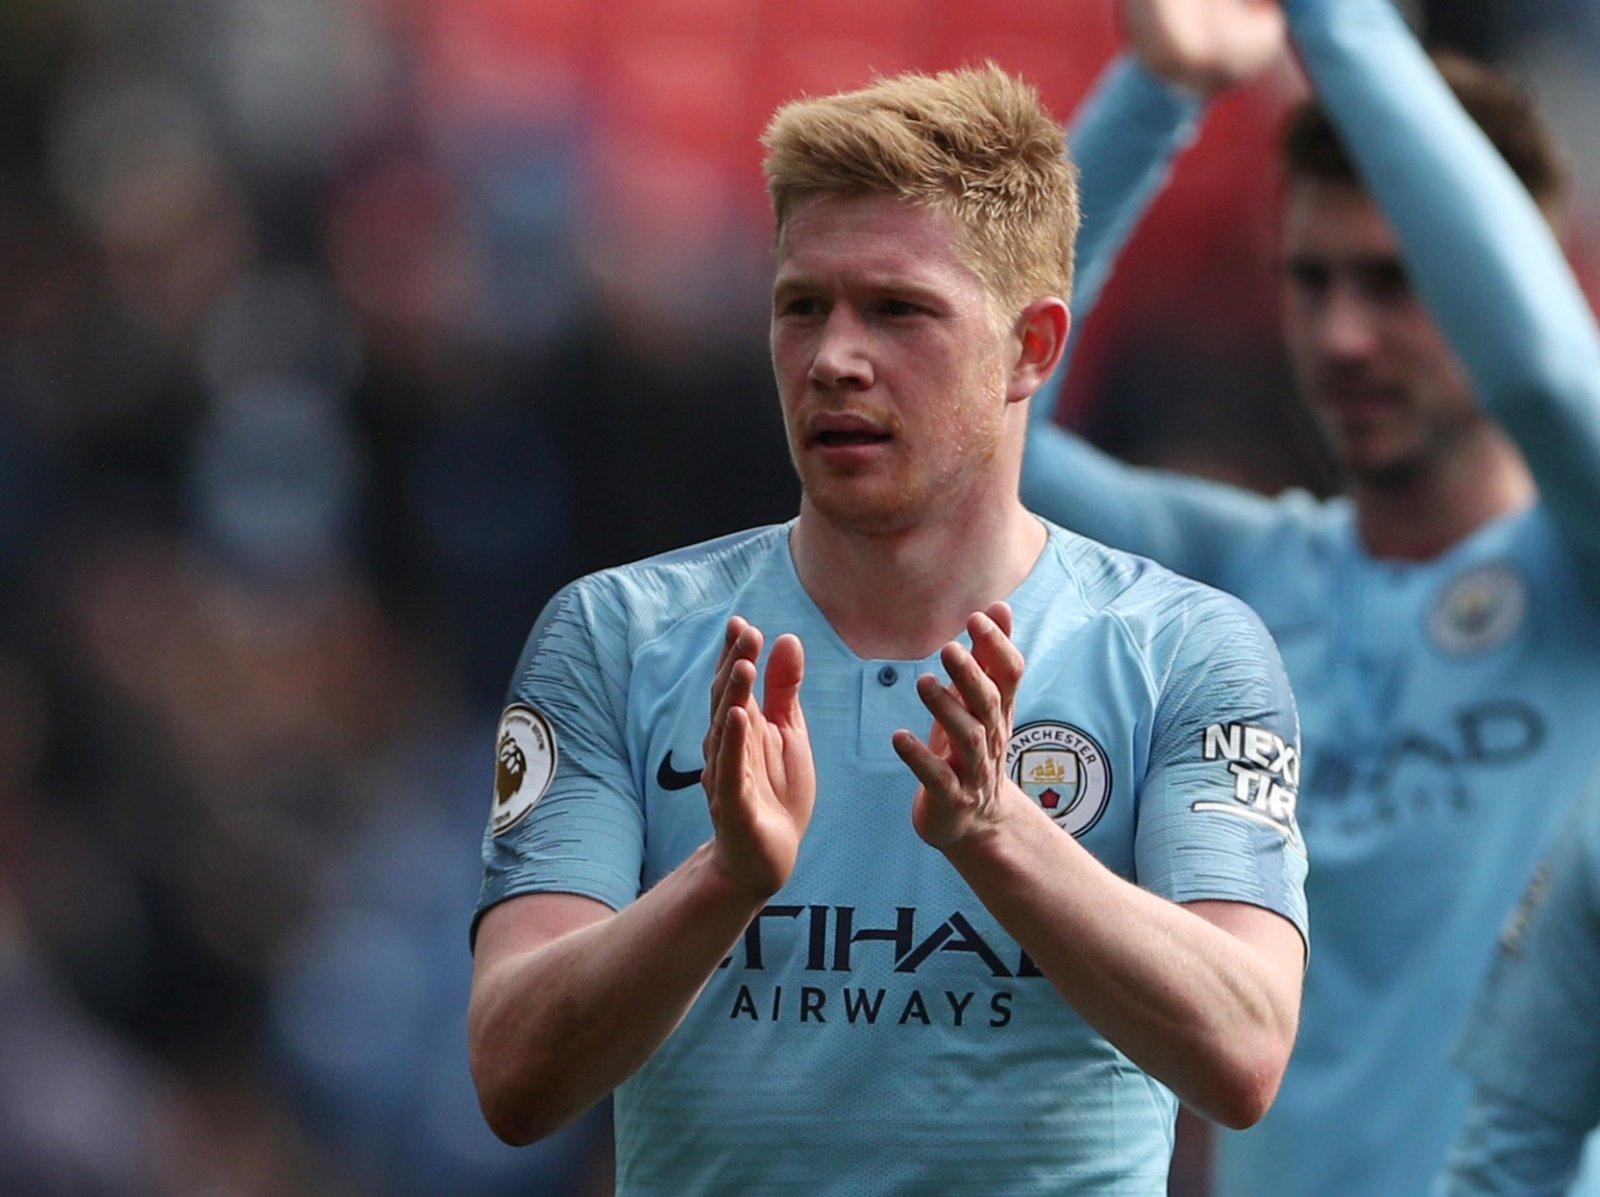 Unsung hero: Kevin de Bruyne really is back just at the right time